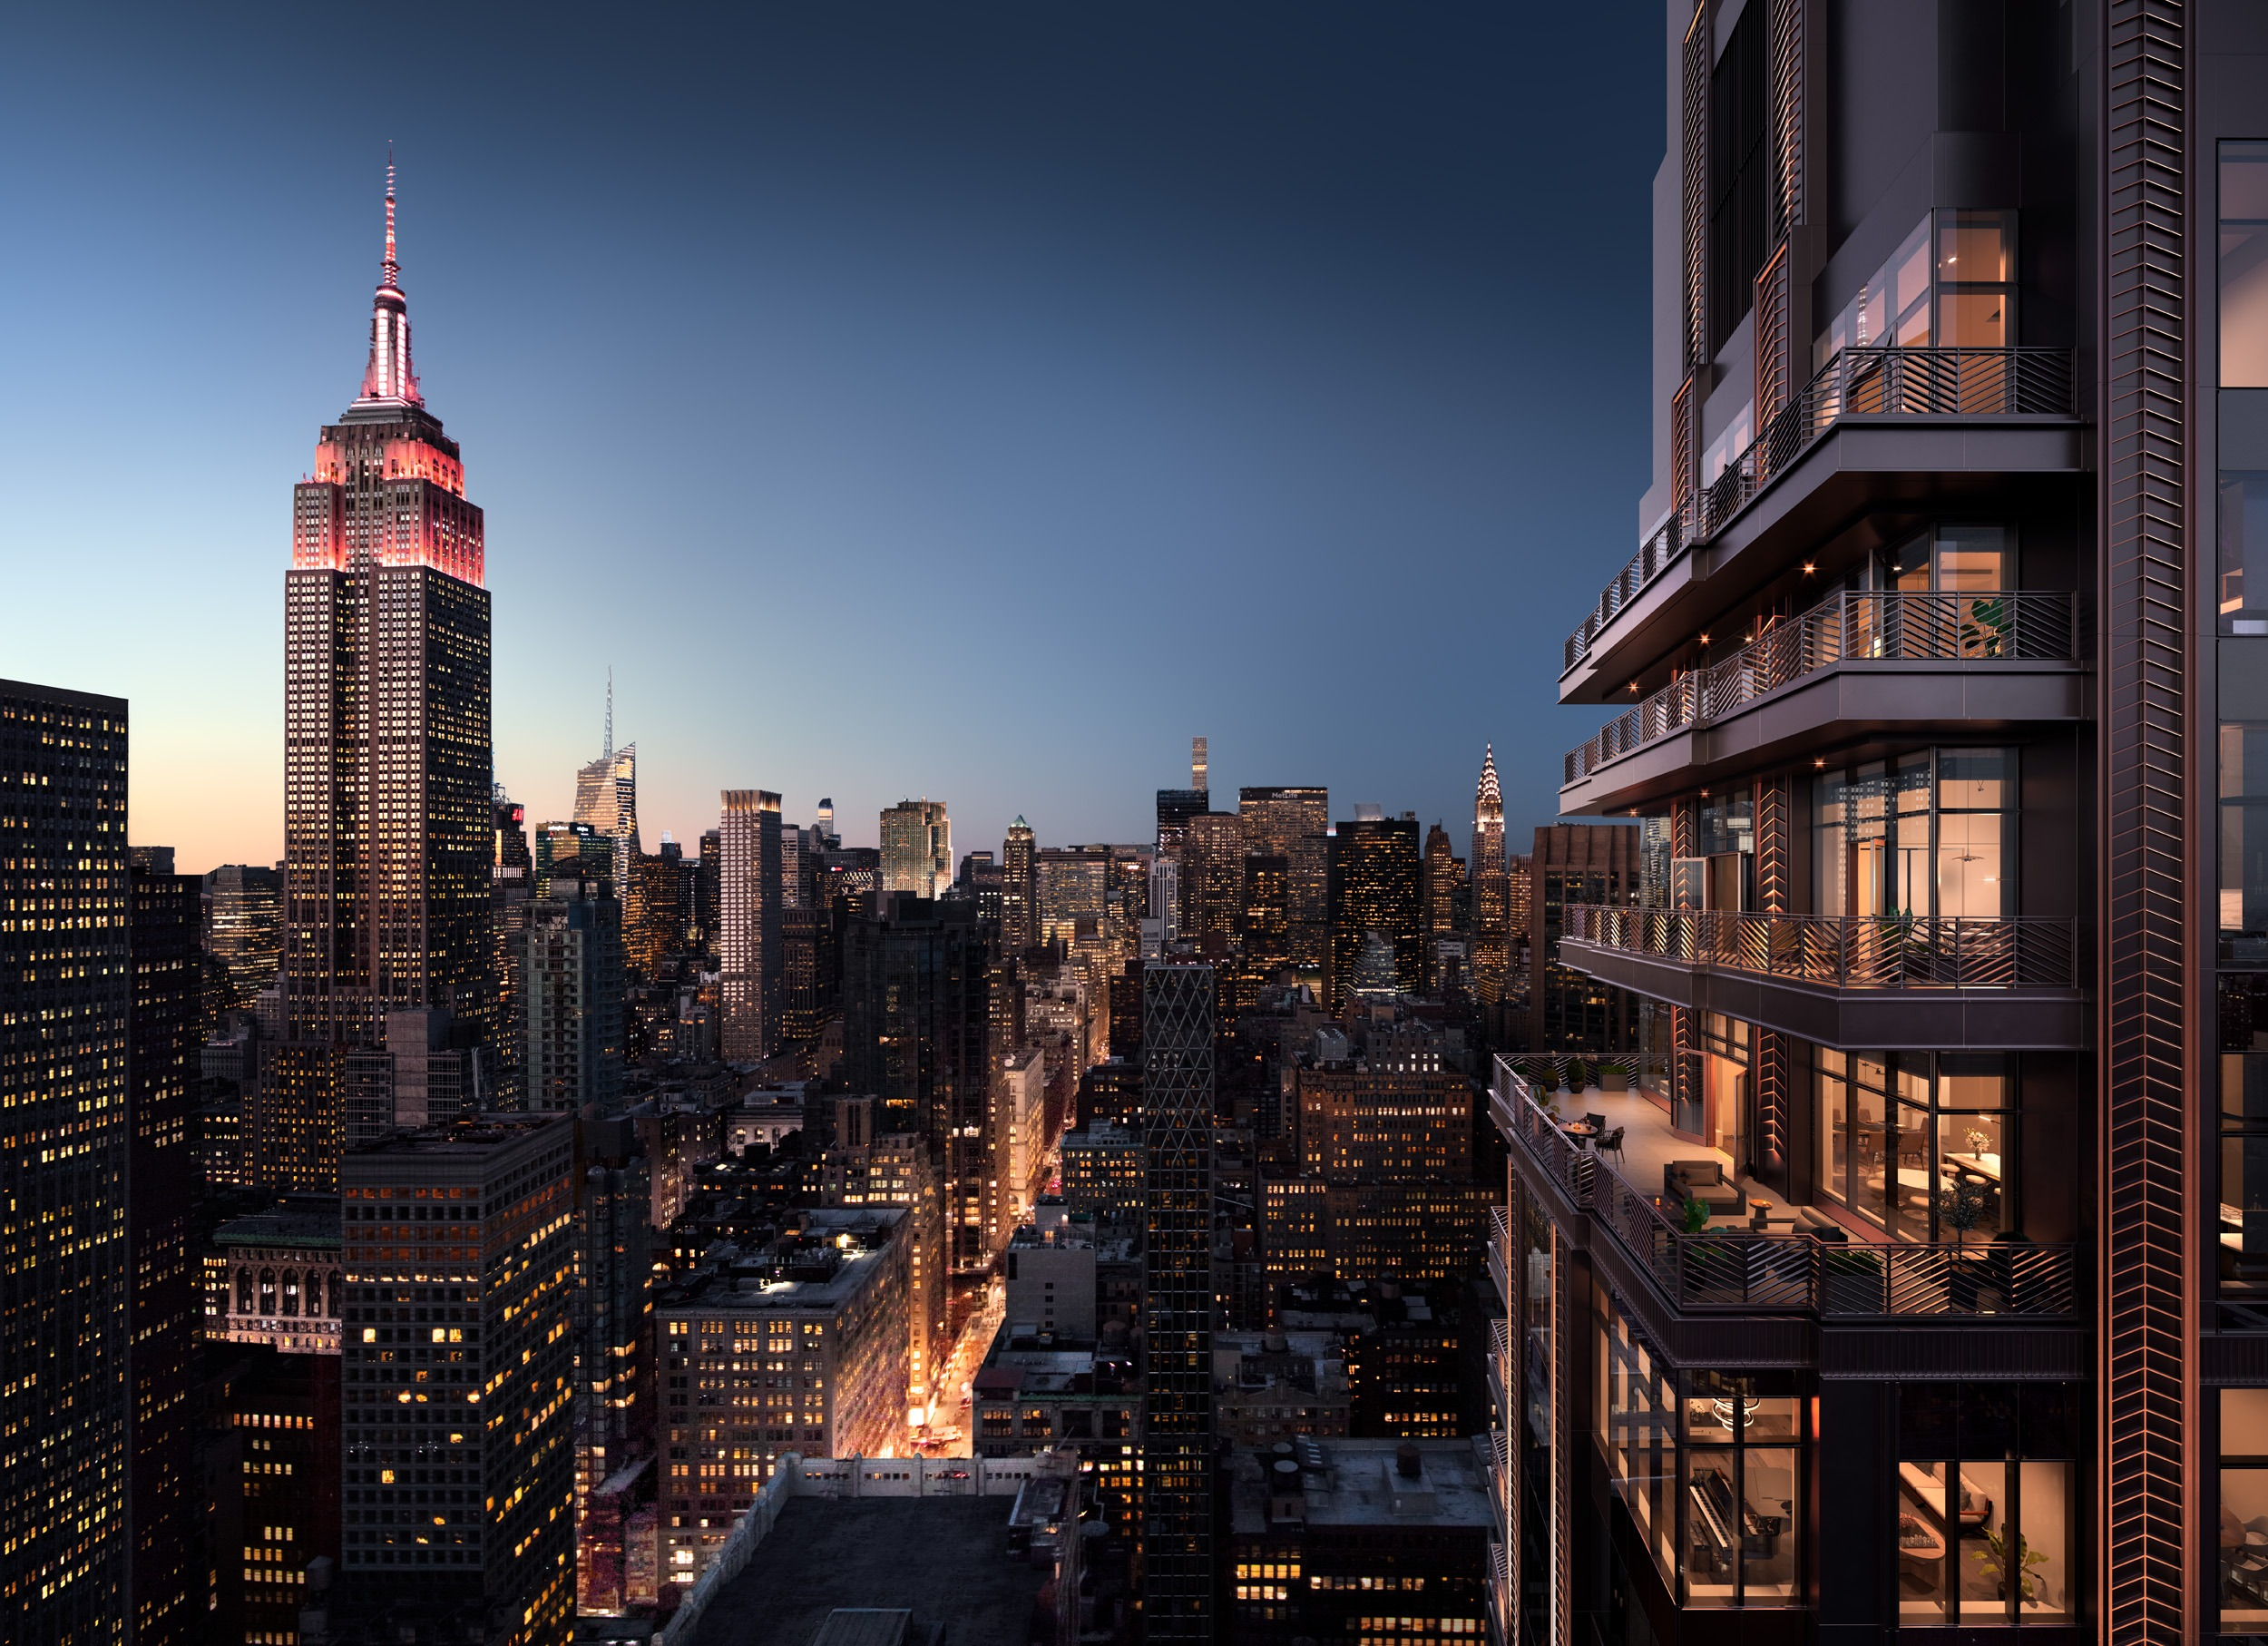 Penthouse Terraces looking North up Madison Avenue